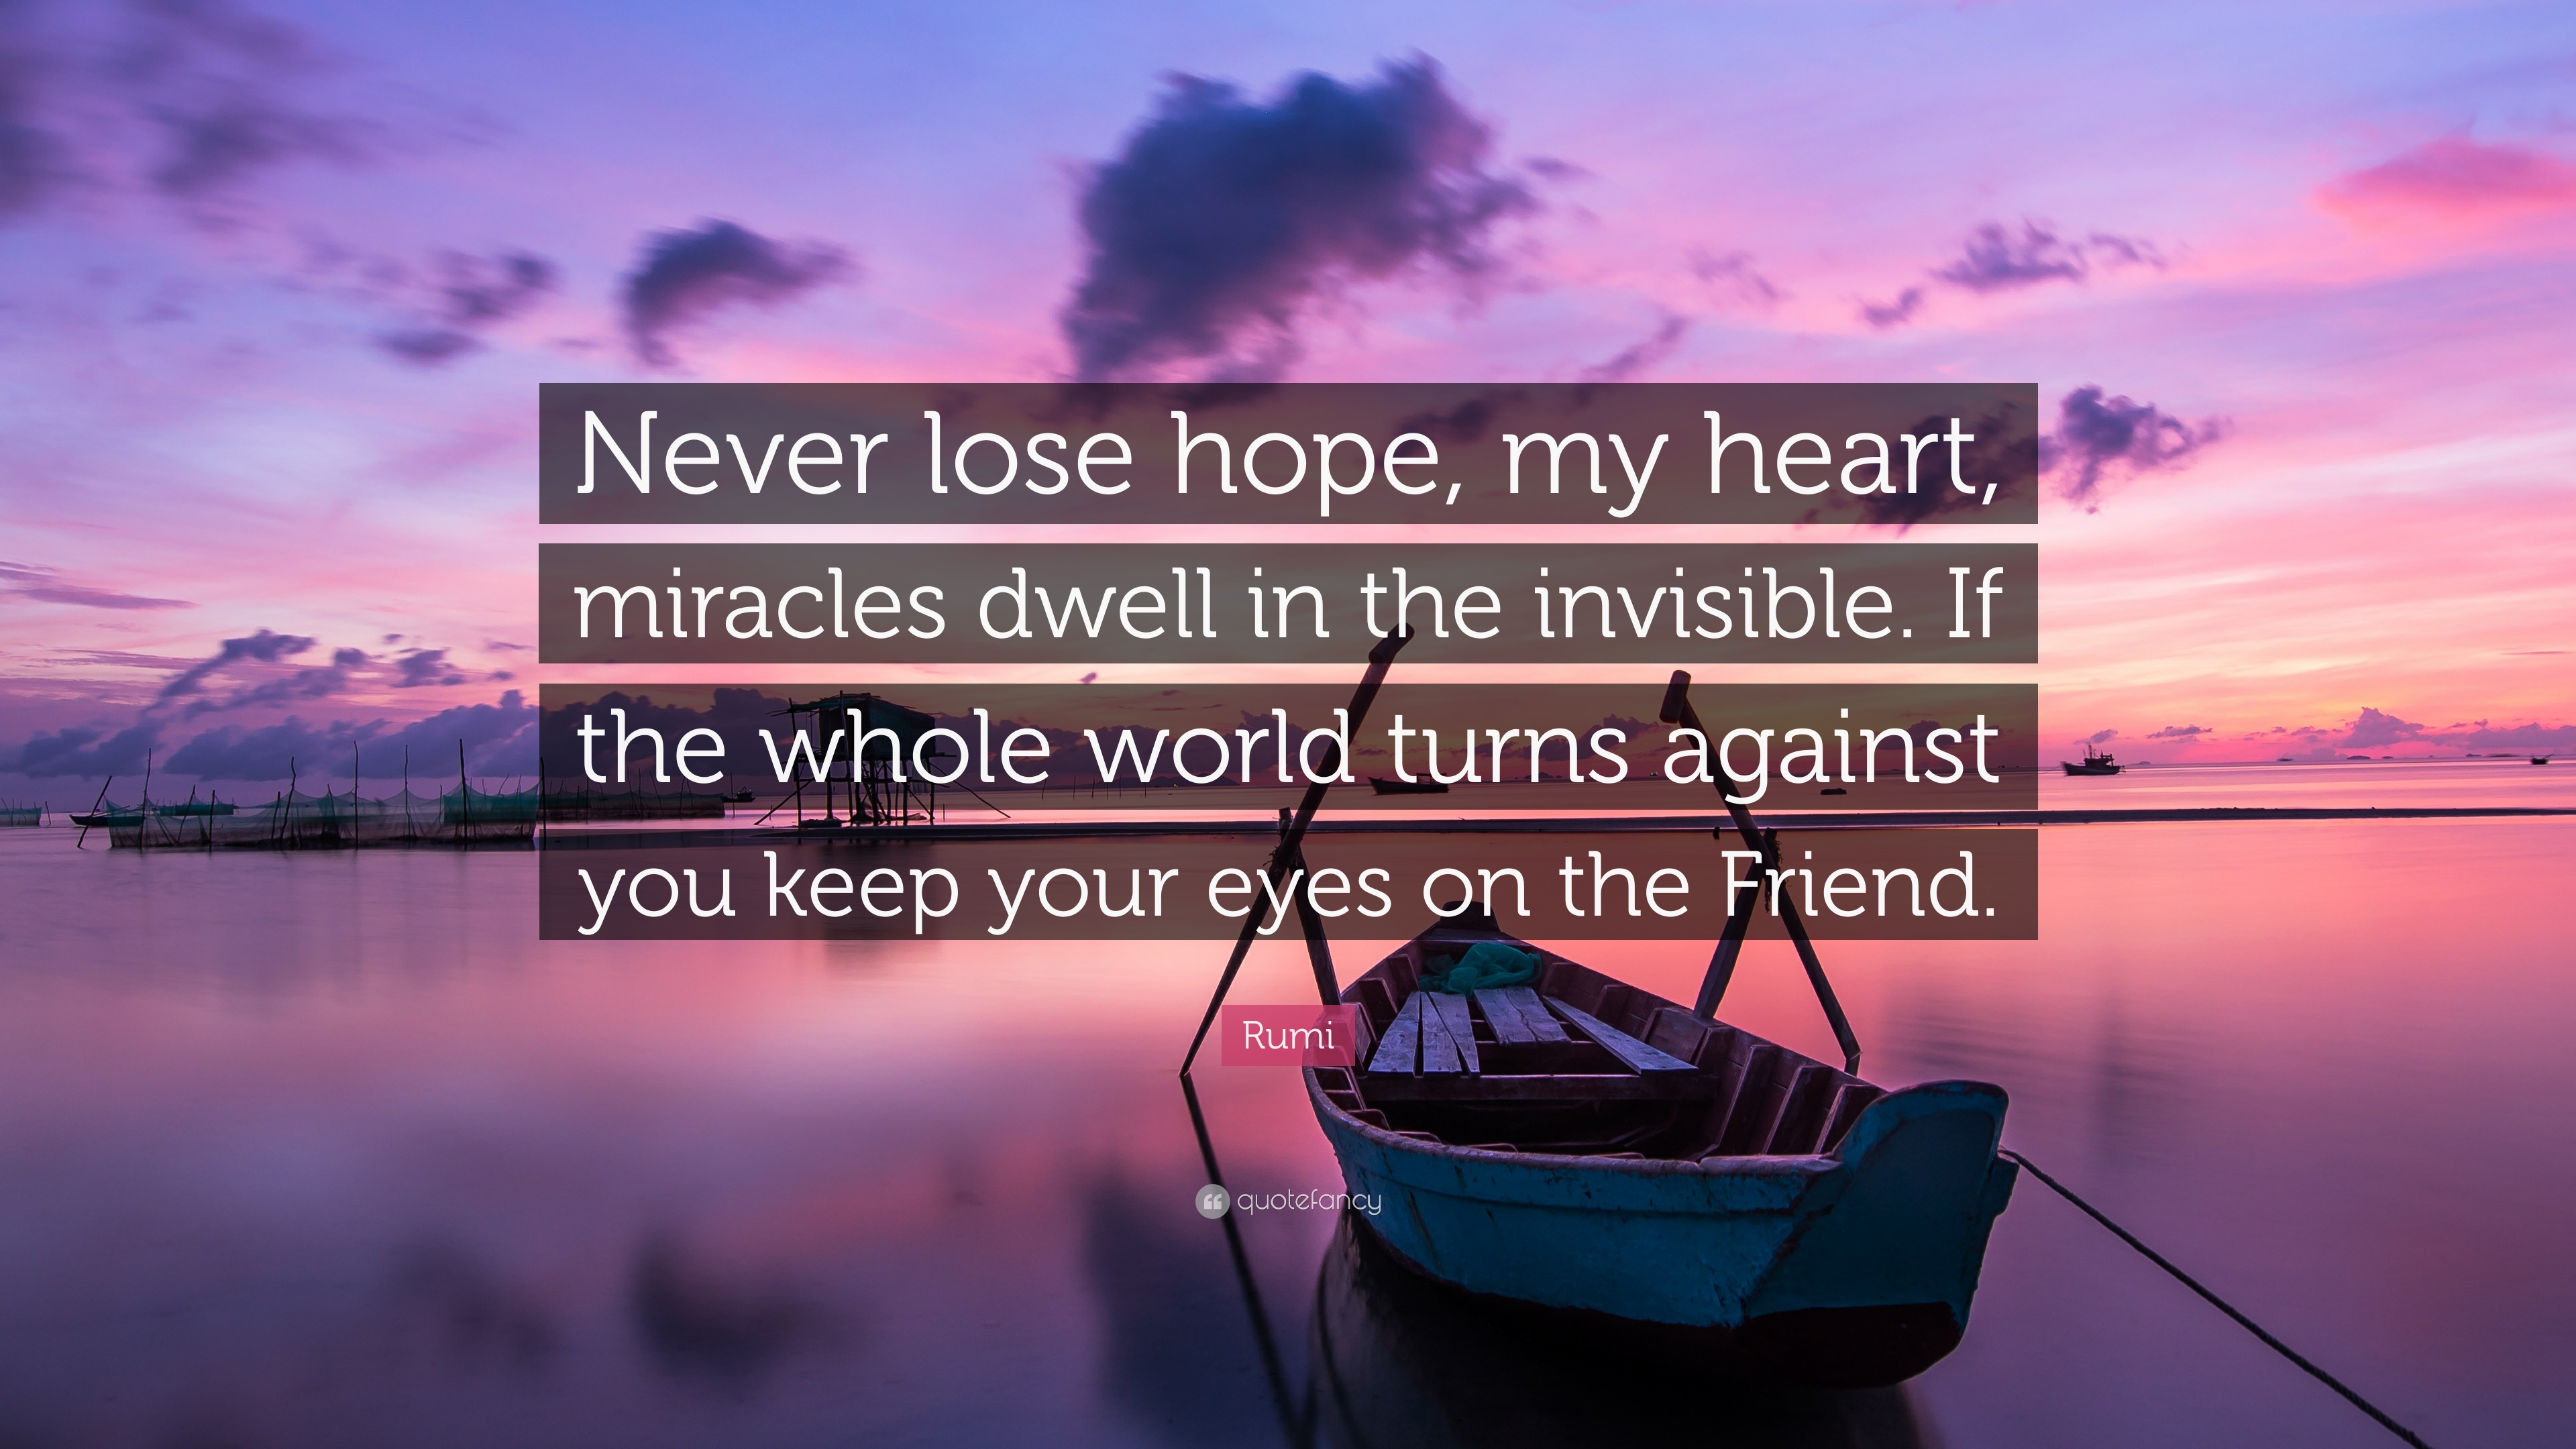 Theodore Roosevelt Quotes Wallpaper Rumi Quote Never Lose Hope My Heart Miracles Dwell In